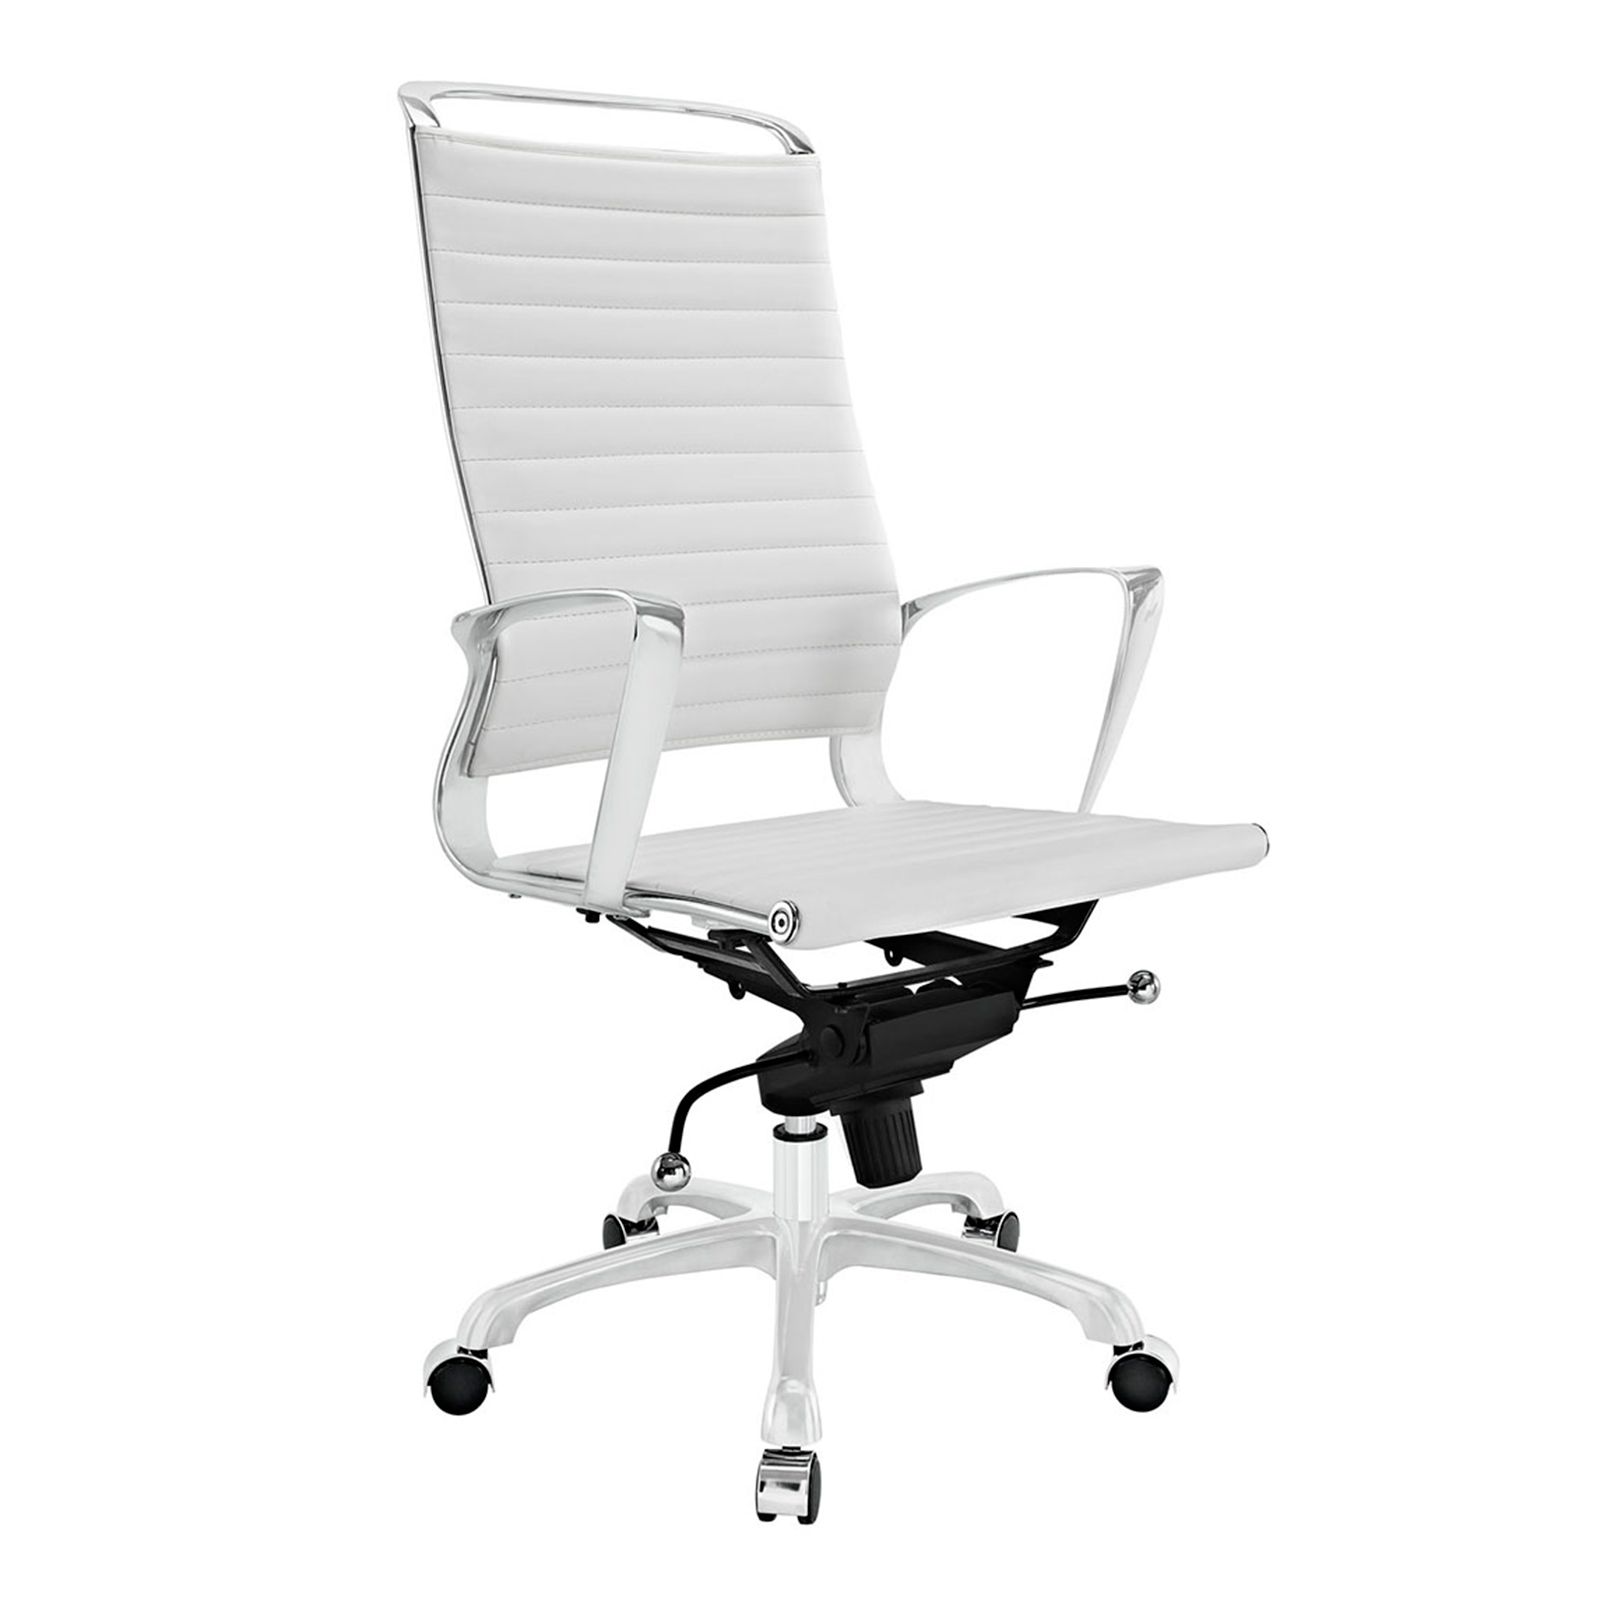 ergonomic chair rental club chairs leather swivel office rentals commercial staging